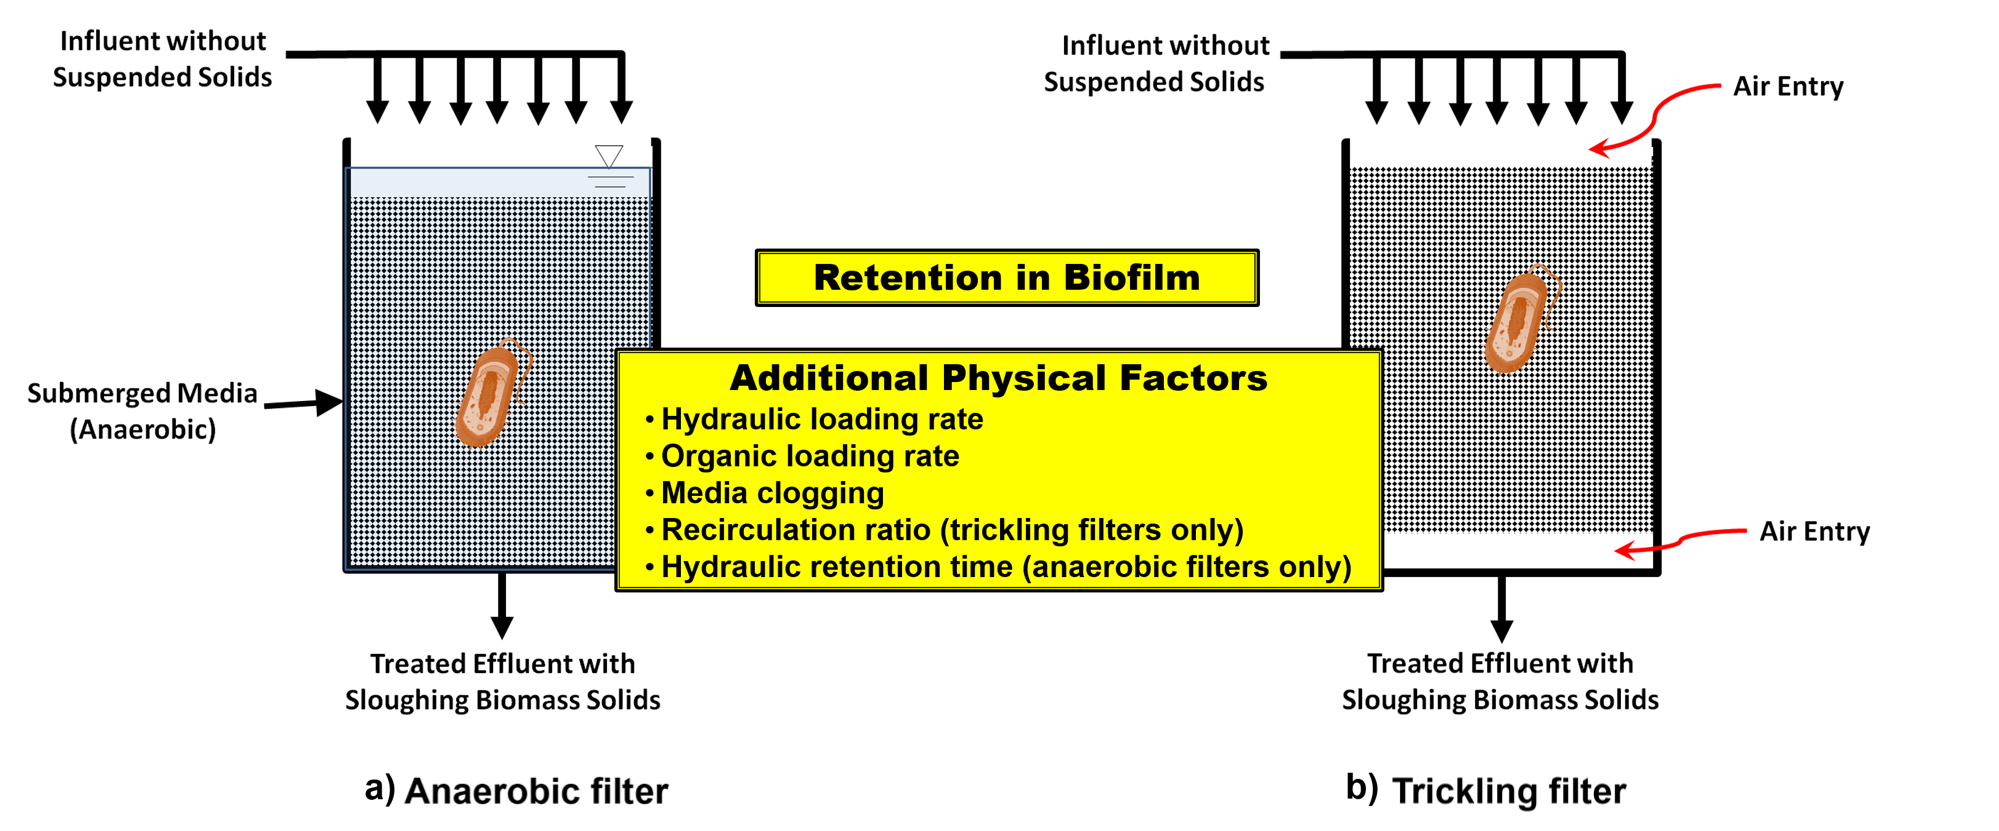 Media Filters: Trickling Filters and Anaerobic Filters